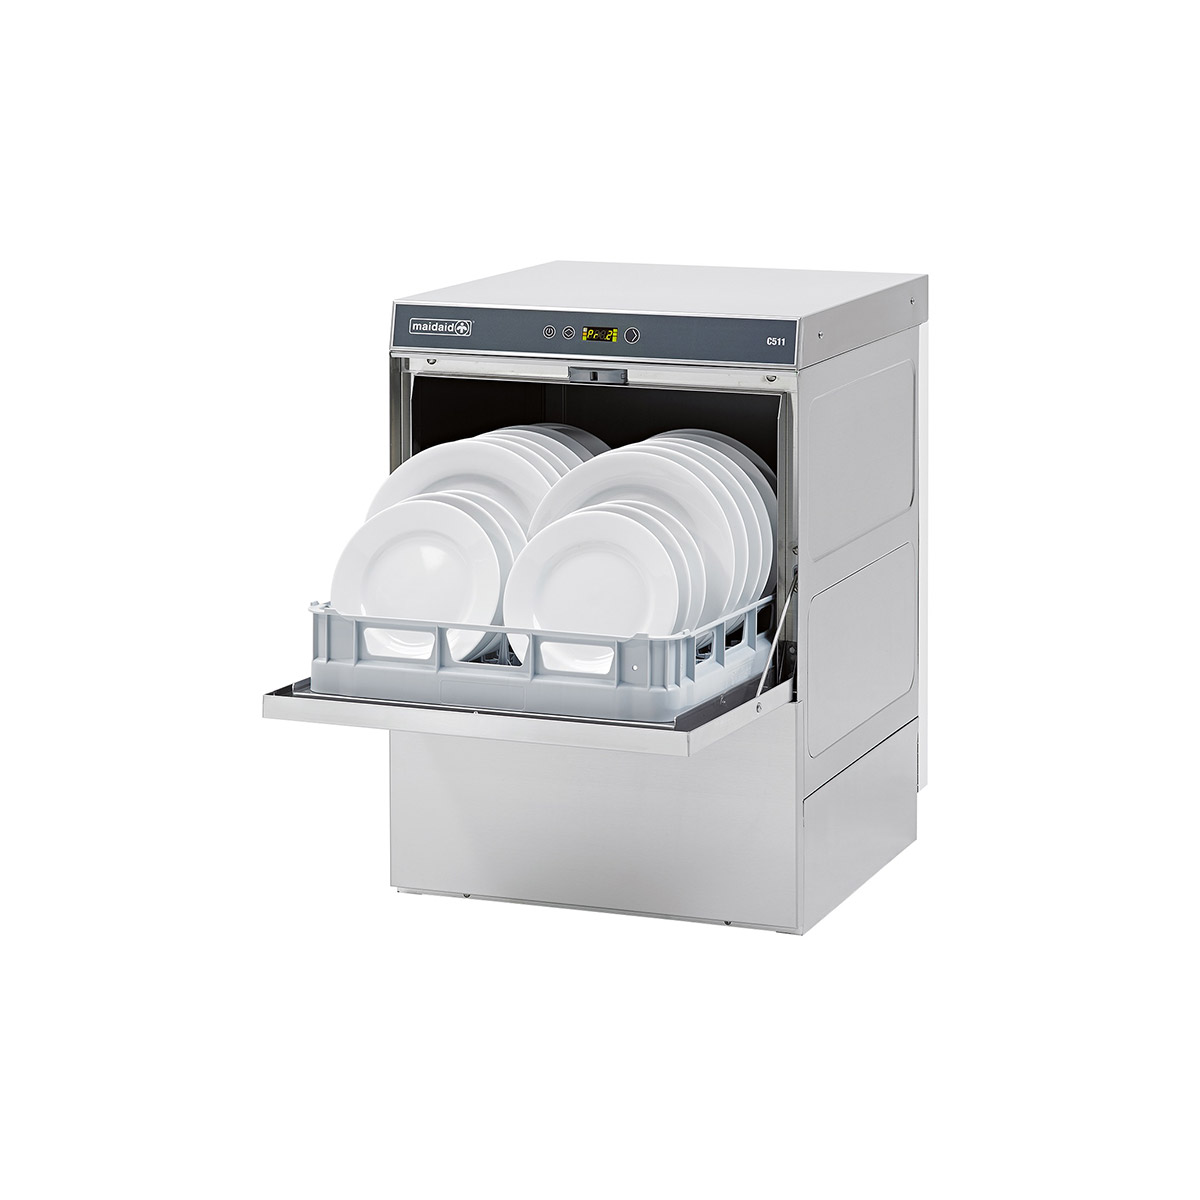 Maidaid Halcyon Dishwasher C511